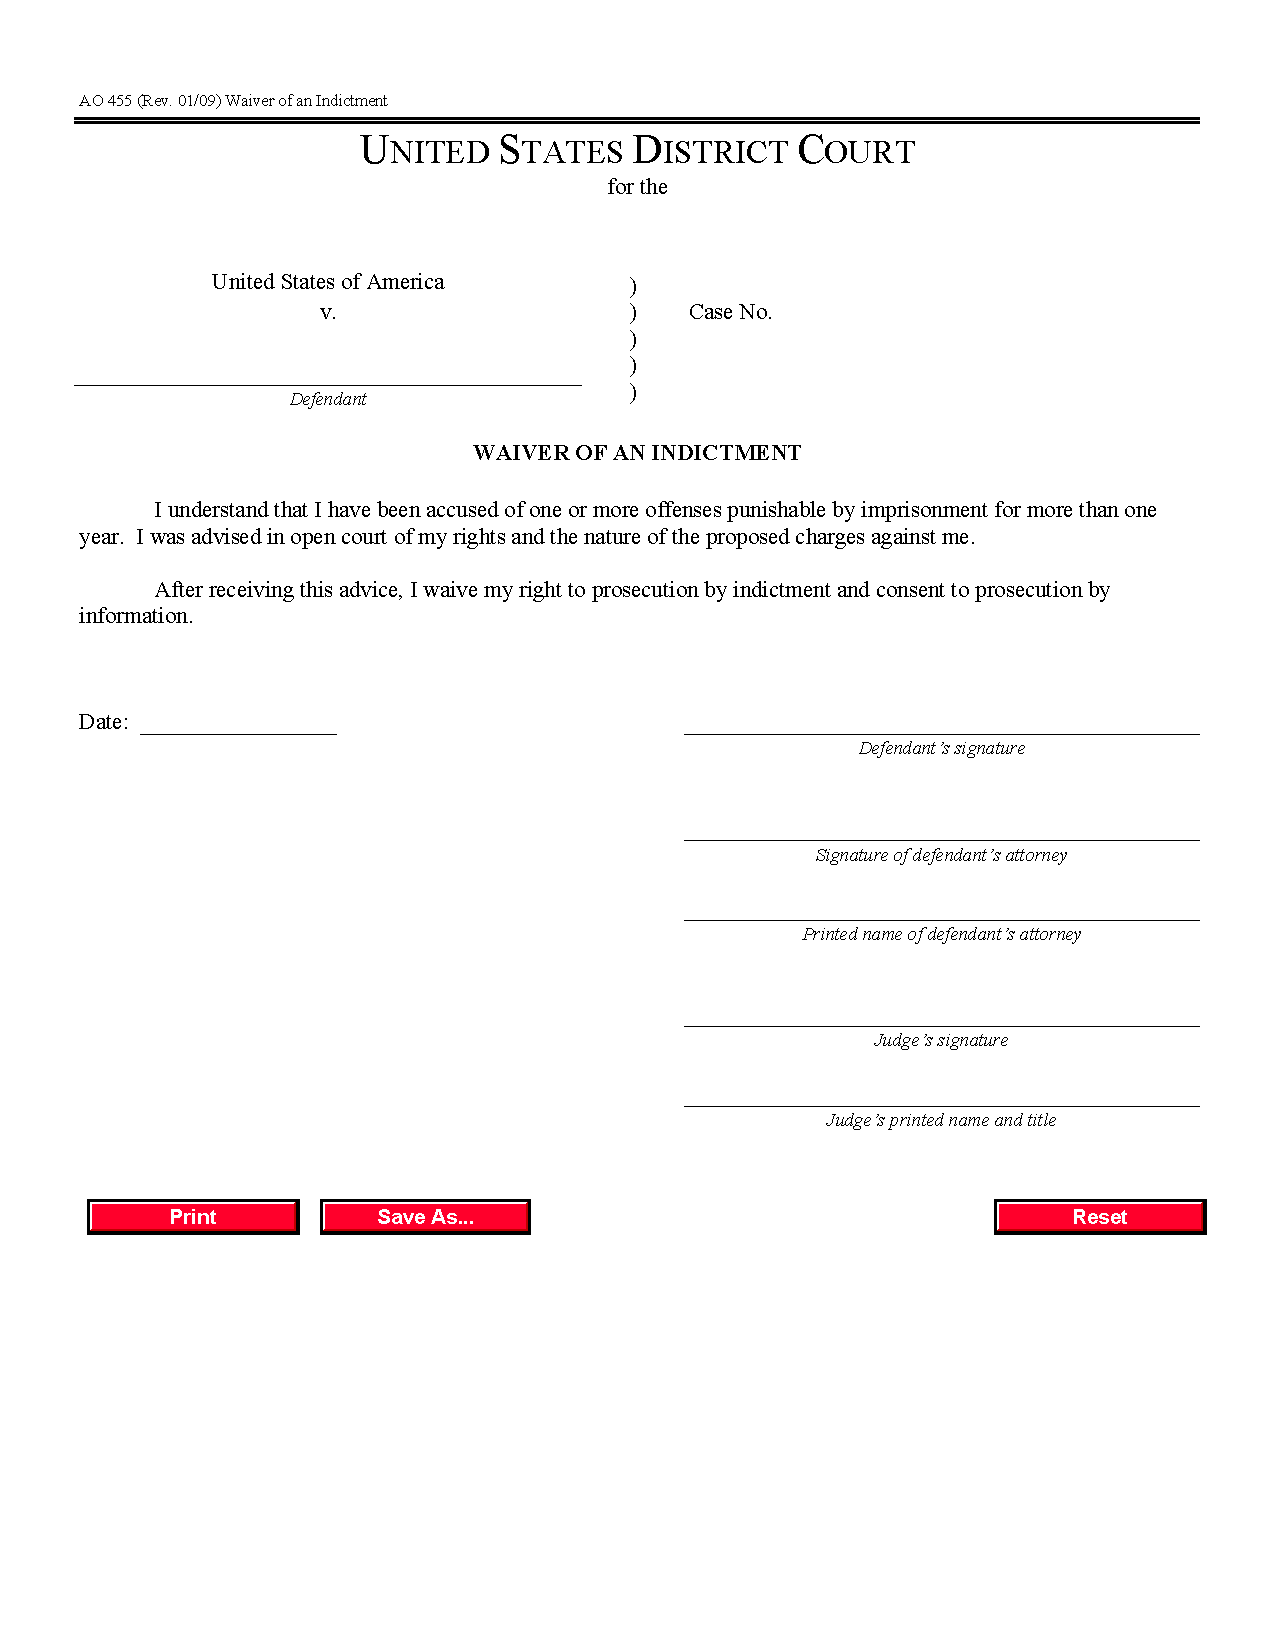 Form AO 455 Waiver of an Indictment